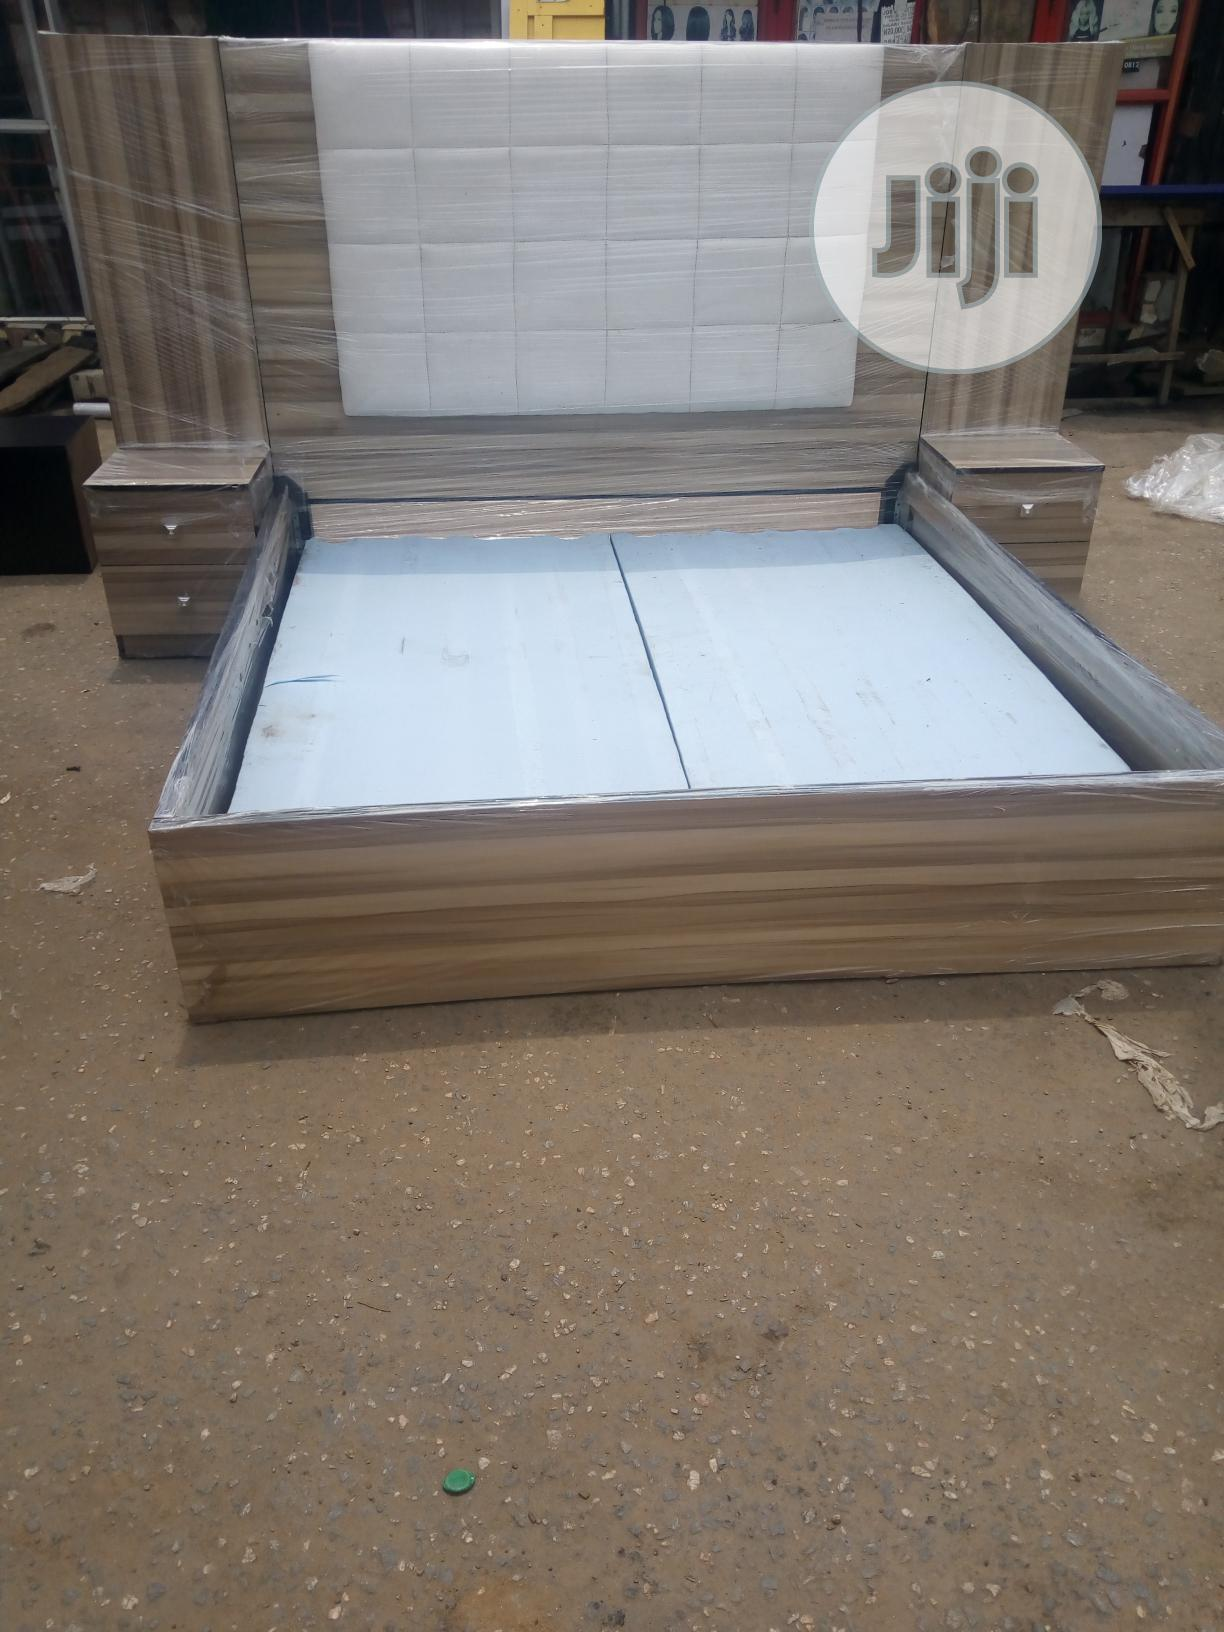 6ft X 6ft Bed Frame | Furniture for sale in Oshodi, Lagos State, Nigeria